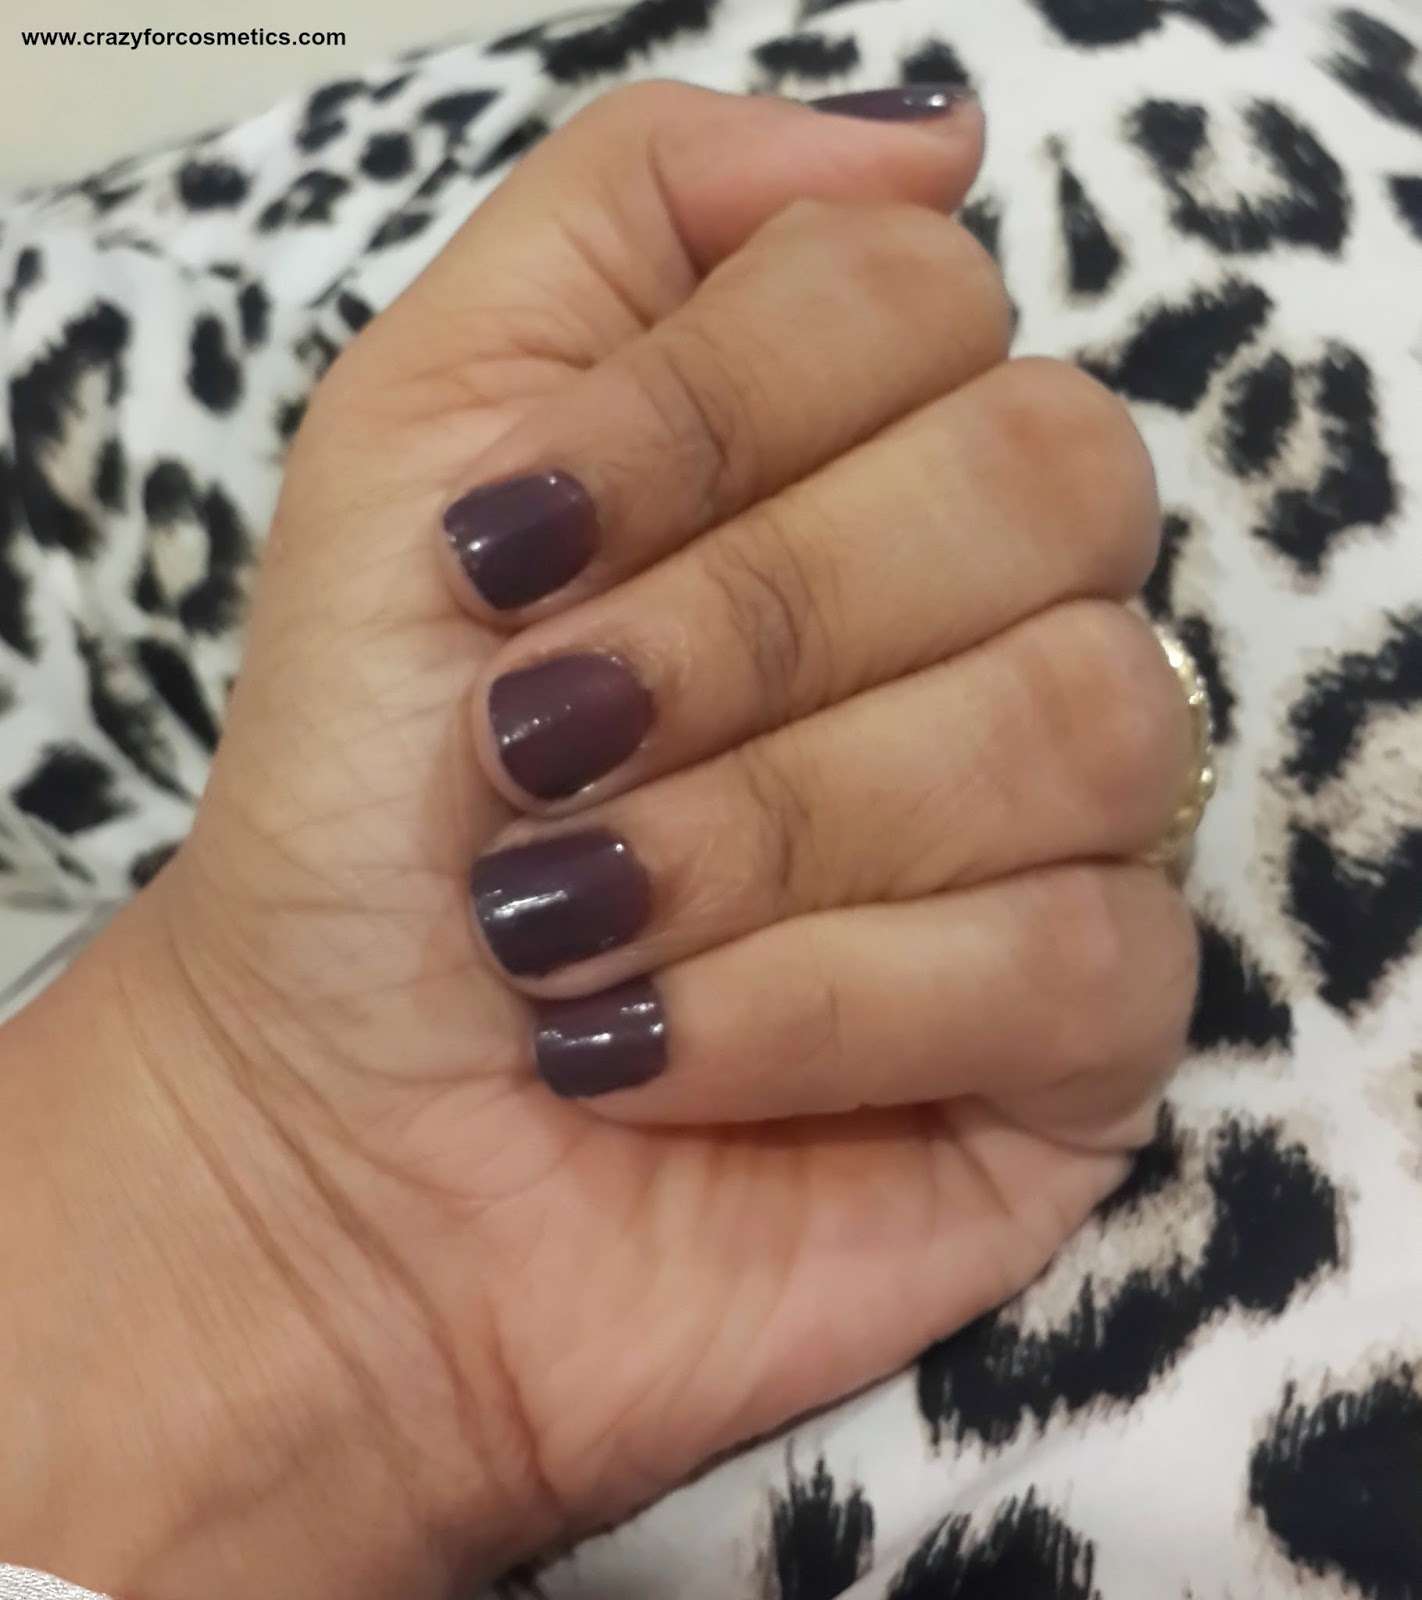 maybelline color show nail polish review-maybelline color show nail polish midnight taupe- maybelline color show midnight tAUPE-maybelline color show nail polish review india- maybelline color show nail polish India-